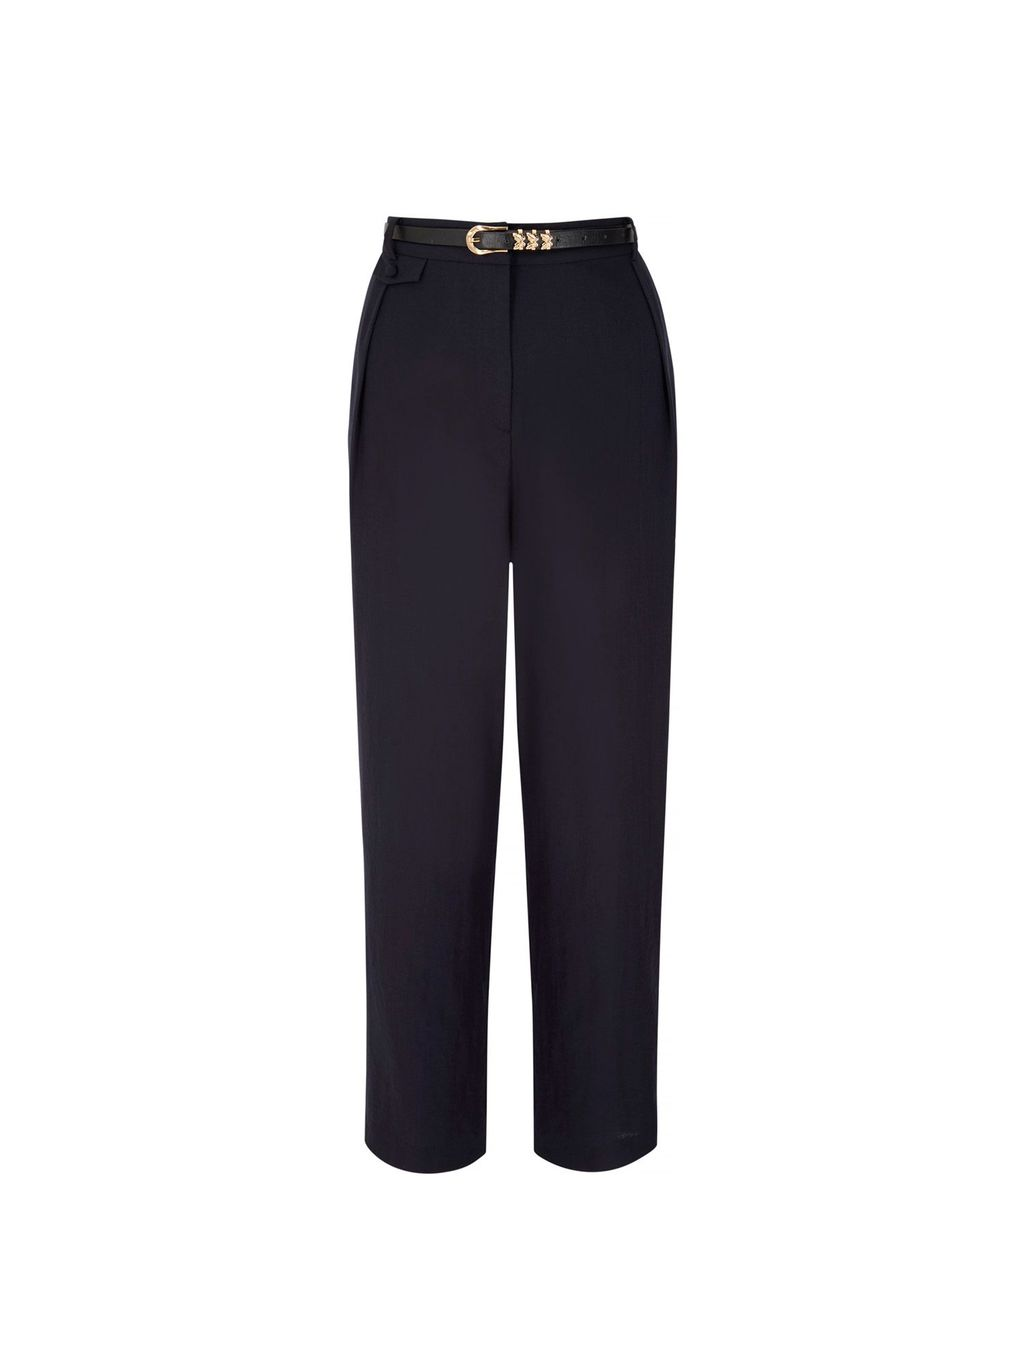 Linen Tailored Trousers, Navy - pattern: plain; waist detail: belted waist/tie at waist/drawstring; waist: mid/regular rise; predominant colour: navy; occasions: work; length: ankle length; fit: straight leg; pattern type: fabric; texture group: woven light midweight; style: standard; fibres: viscose/rayon - mix; season: s/s 2016; wardrobe: basic